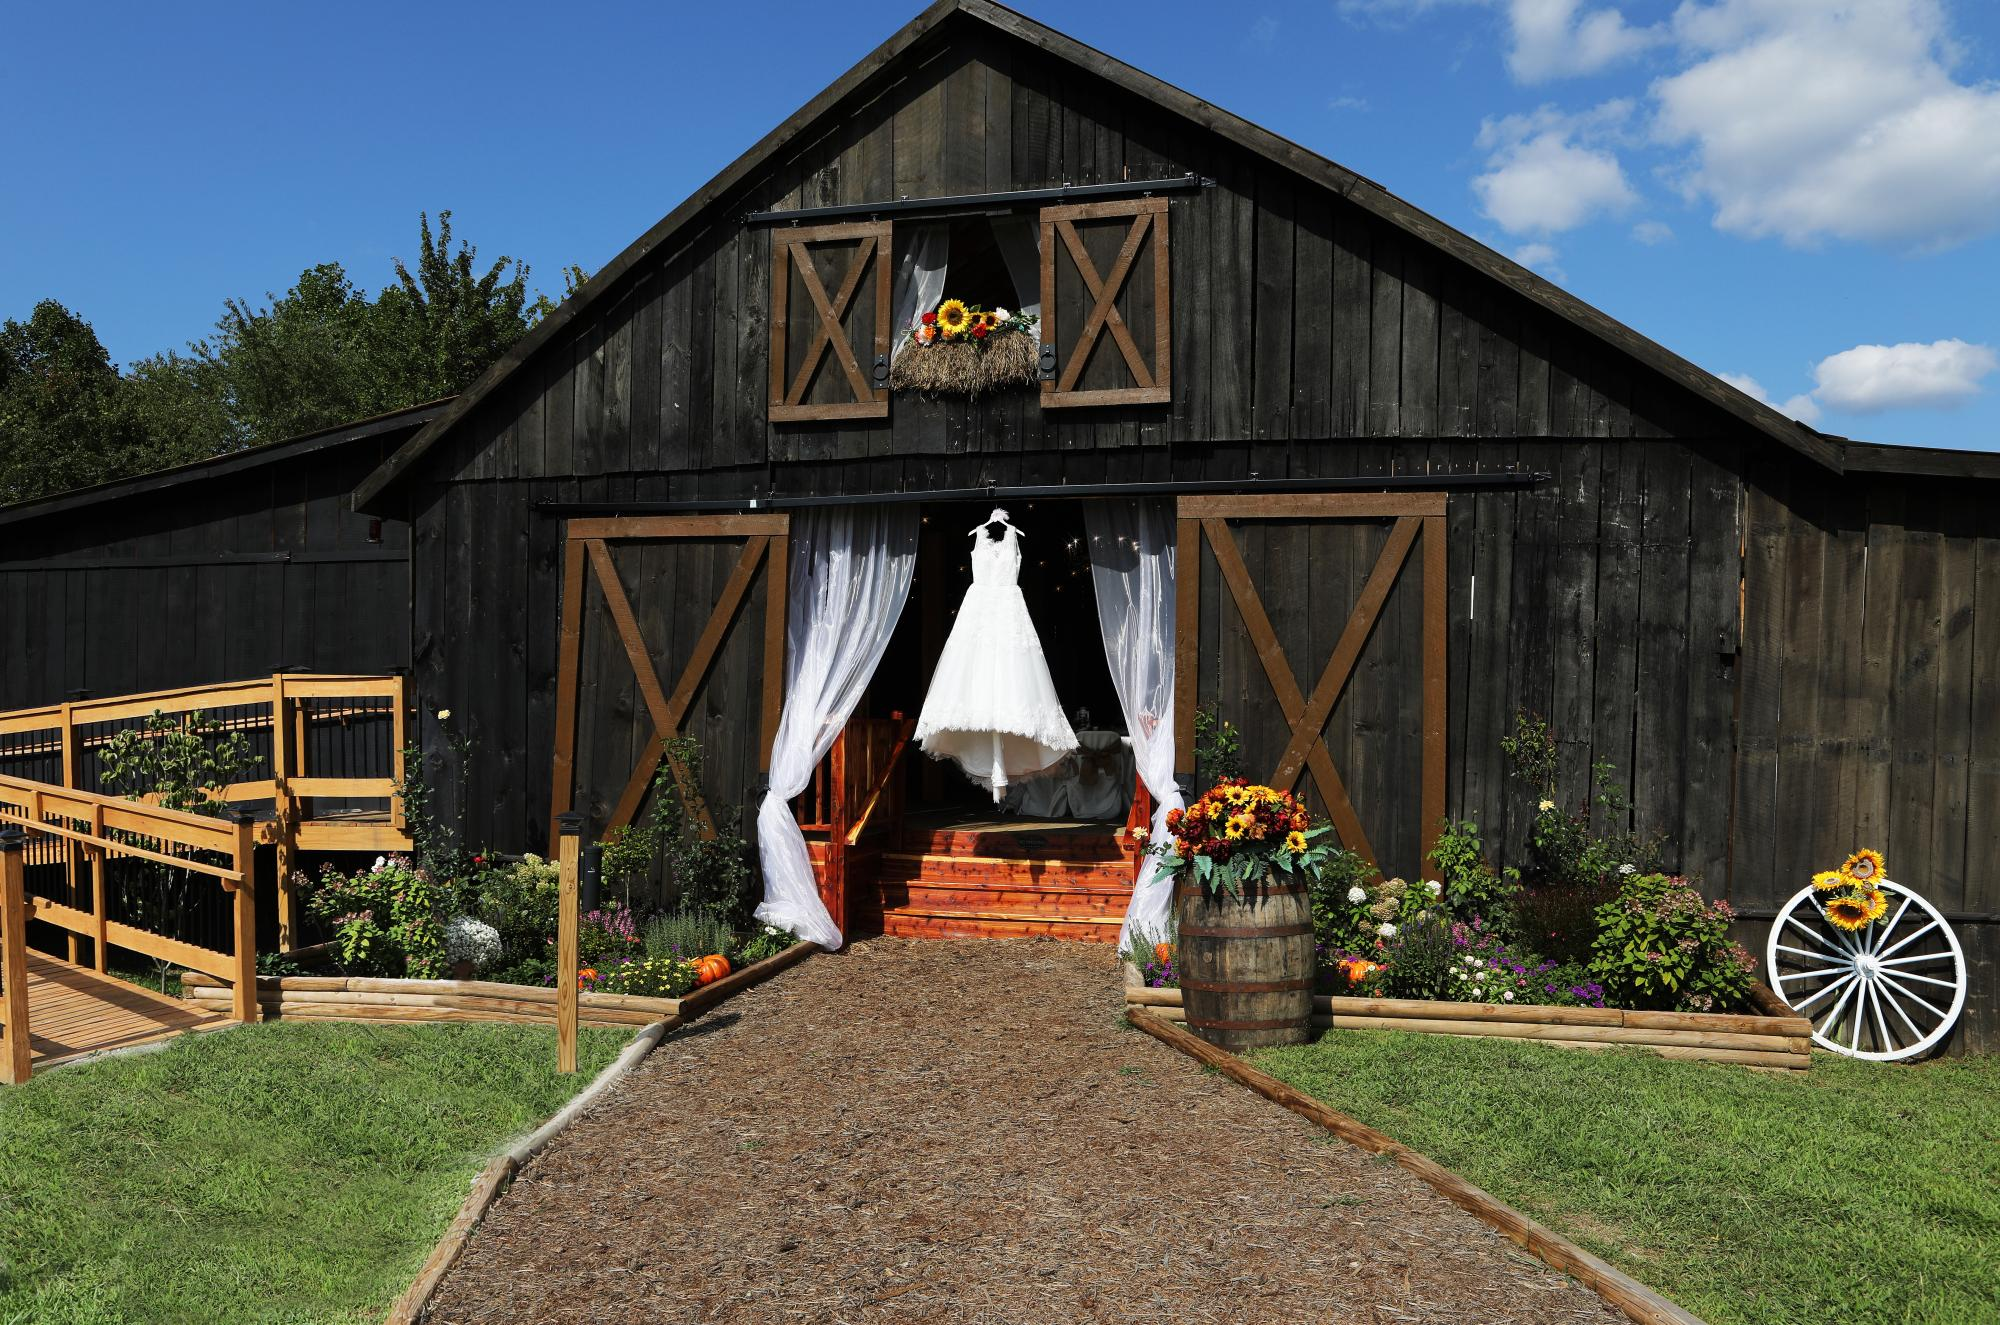 22__wedding_dress_hanging_on_event_barn.jpg